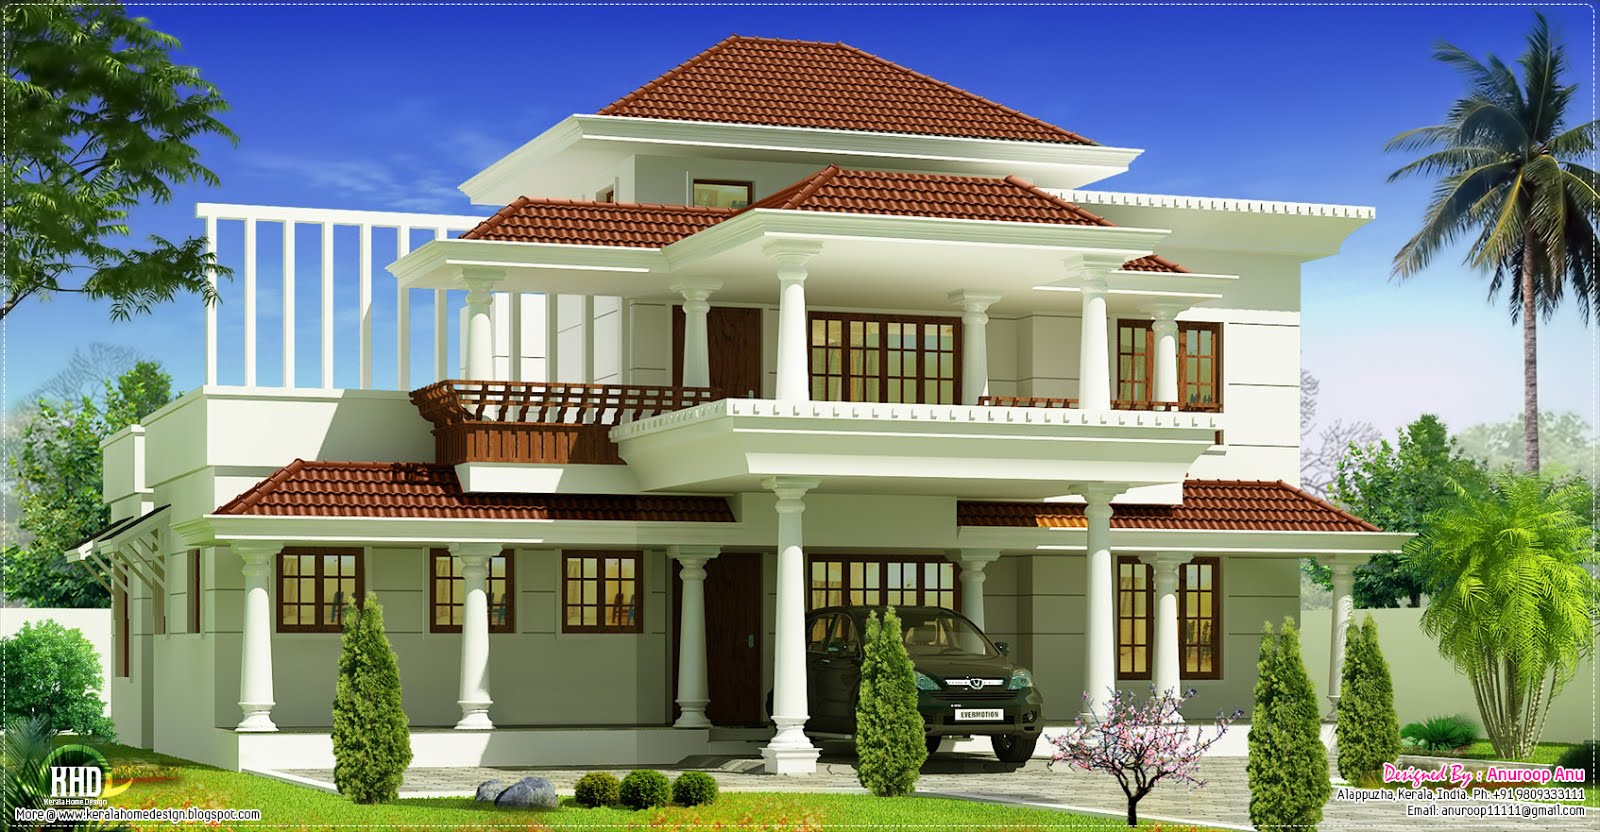 traditional-mix-kerala-home.jpg